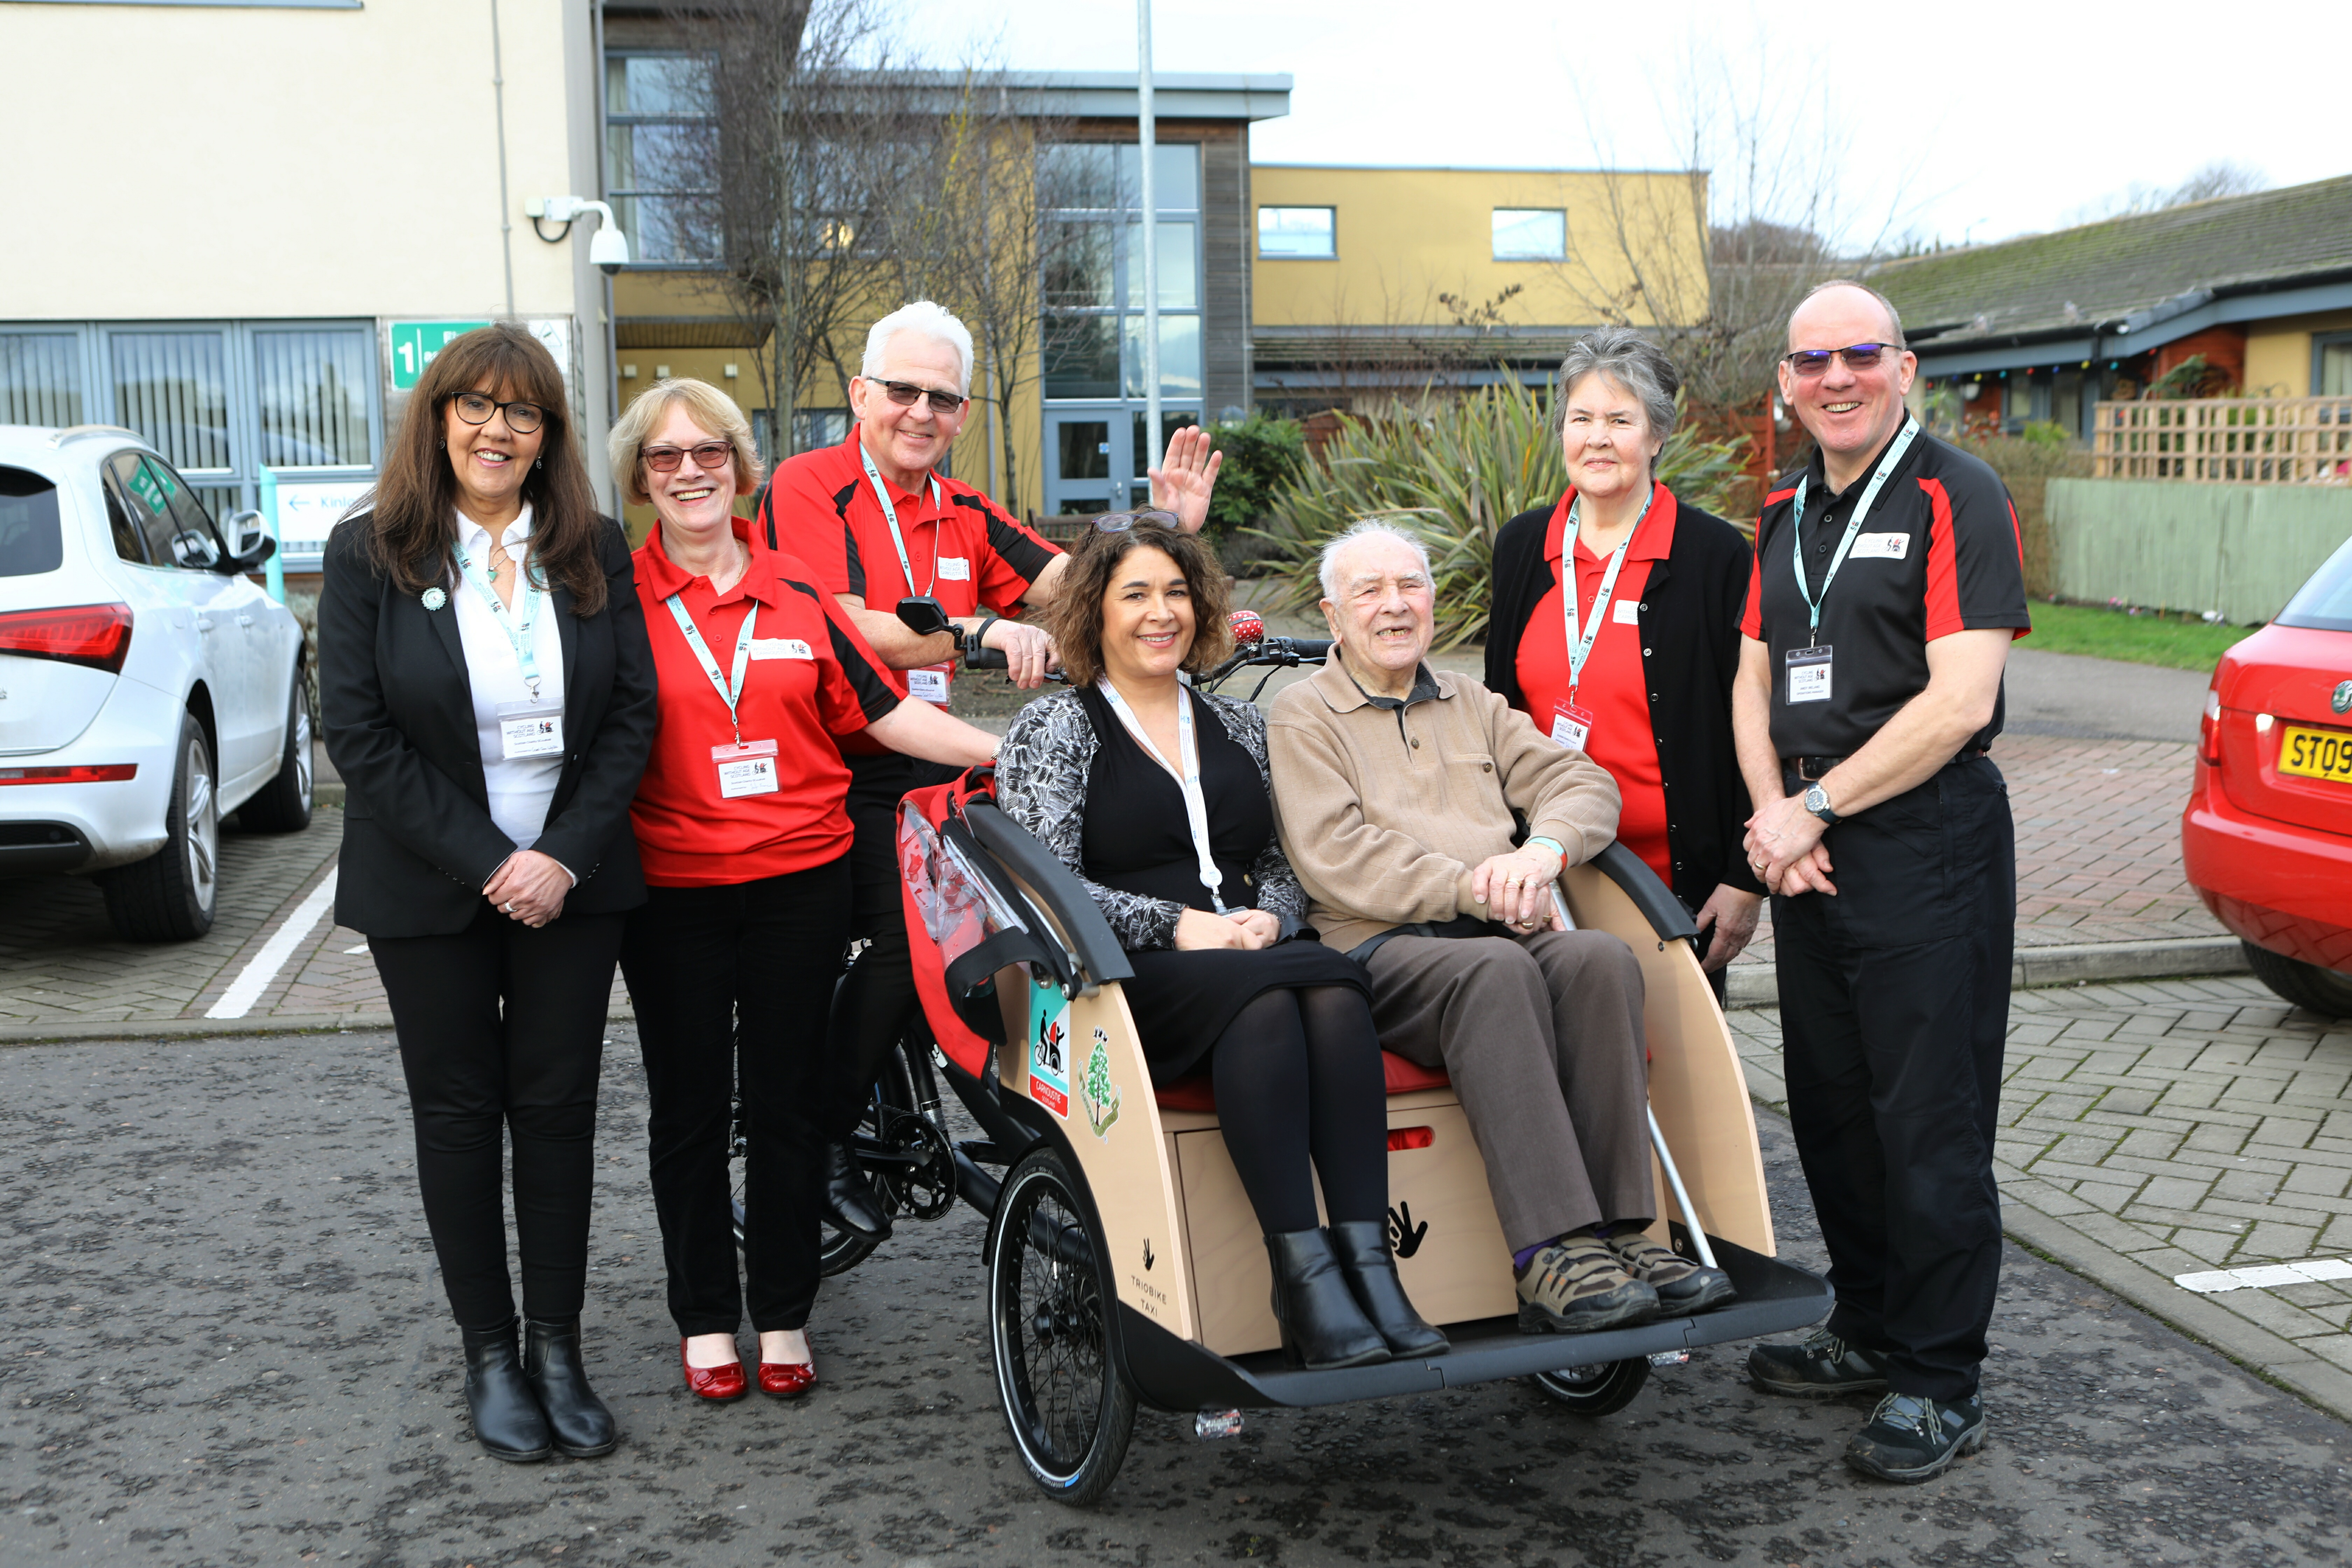 At the Kinloch Care Centre launch of the Carnoustie Cycling Without Age initiative (from left) Christine Bell, Executive Officer, Cycling Without Age Scotland; Lorraine Young, chapter co-organiser; pilot Bruce Crawford, chapter co-organiser Jean Brown,  Andrew Ireland. CWA Scotland operations manager, care centre manager Carol Brunton and John Robertson in the trishaw.